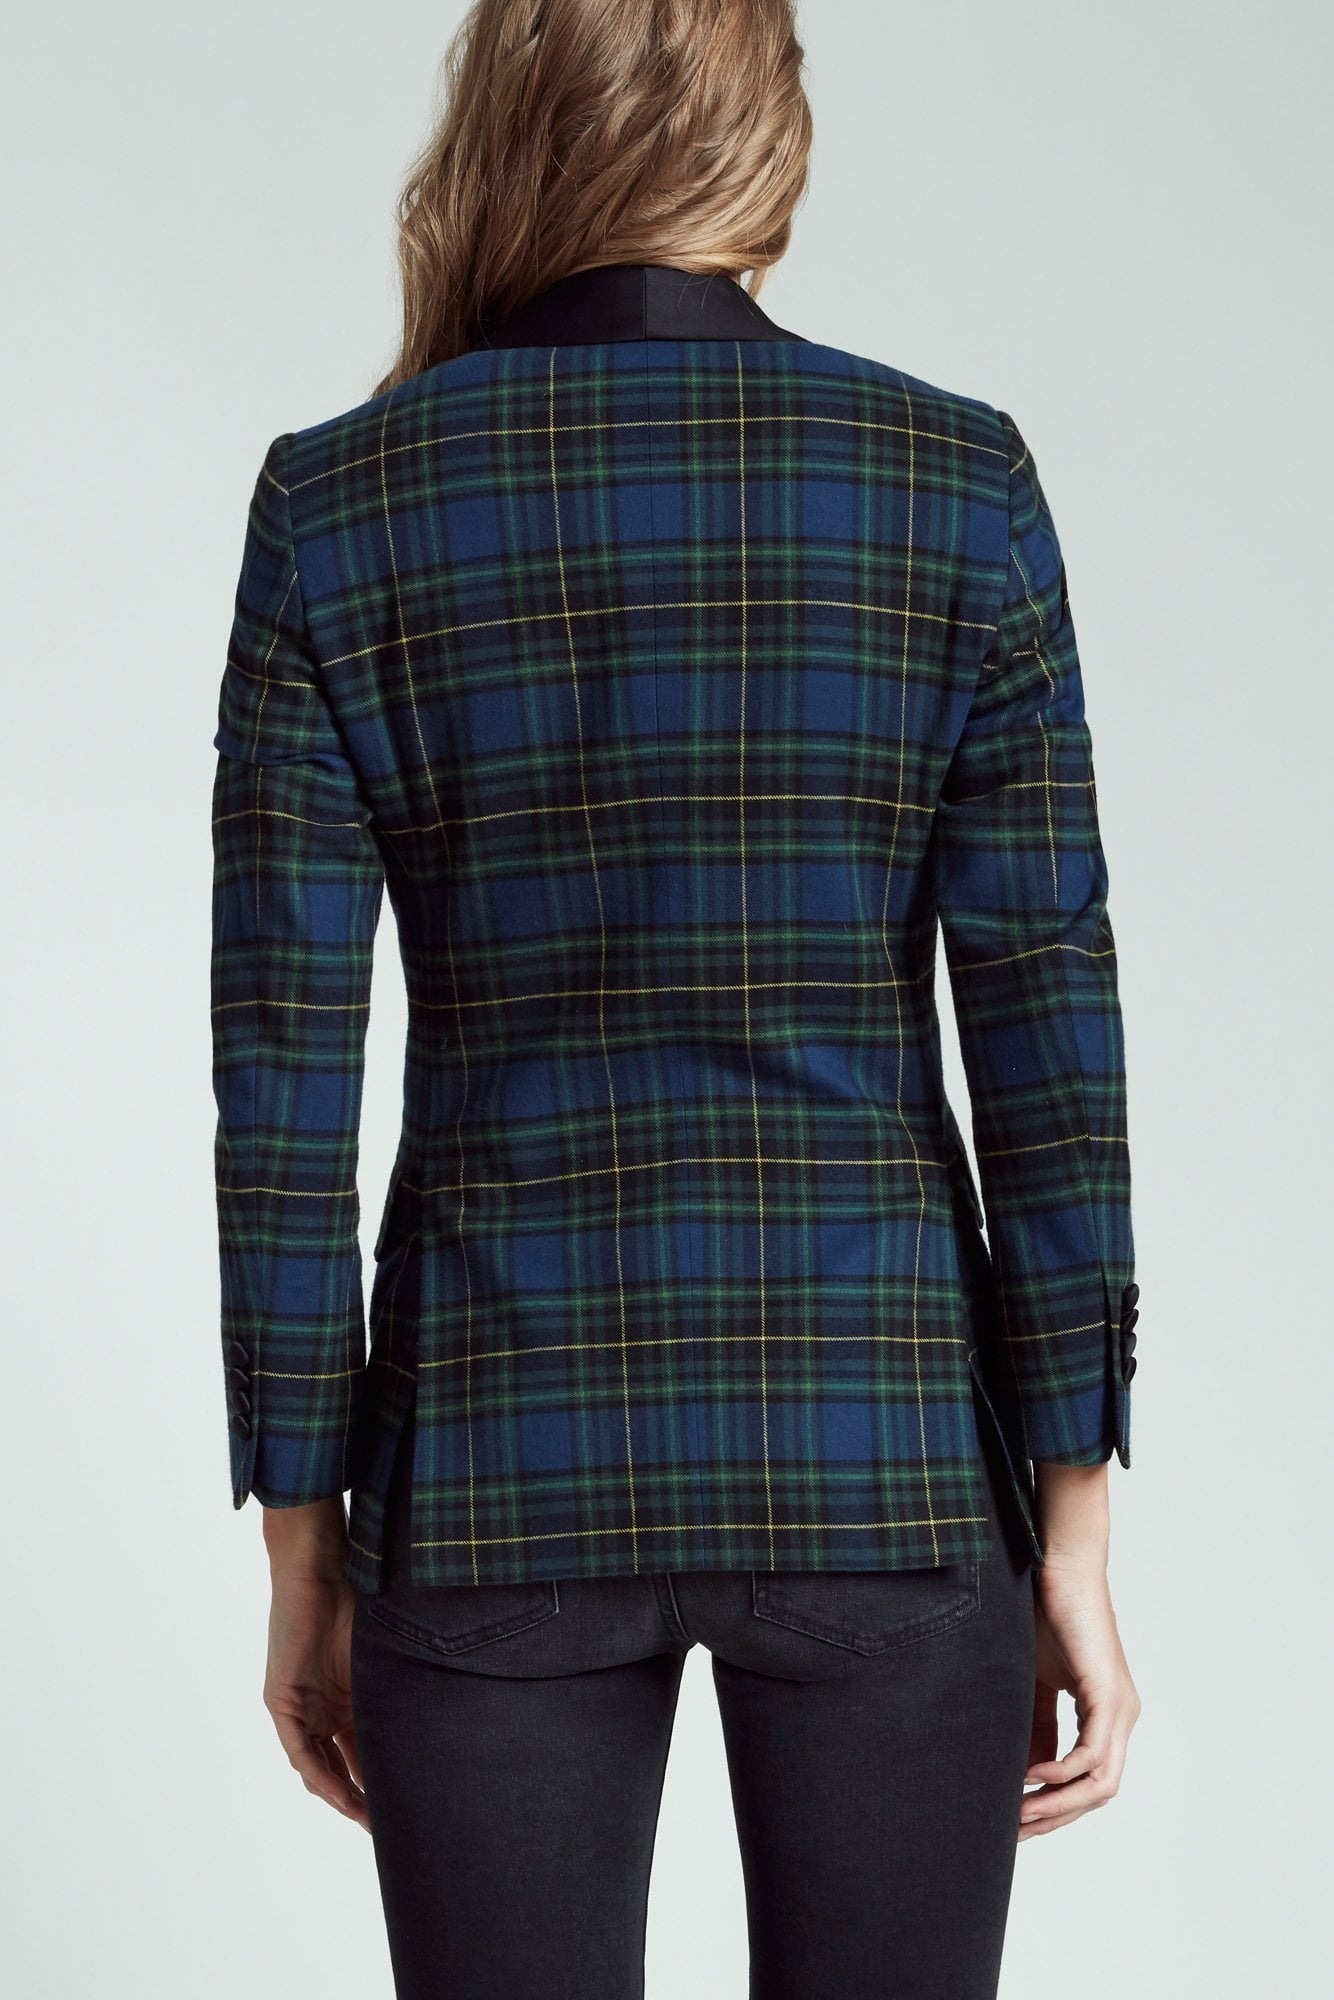 Shawl Lapel Tuxedo Jacket - Green and Blue Plaid